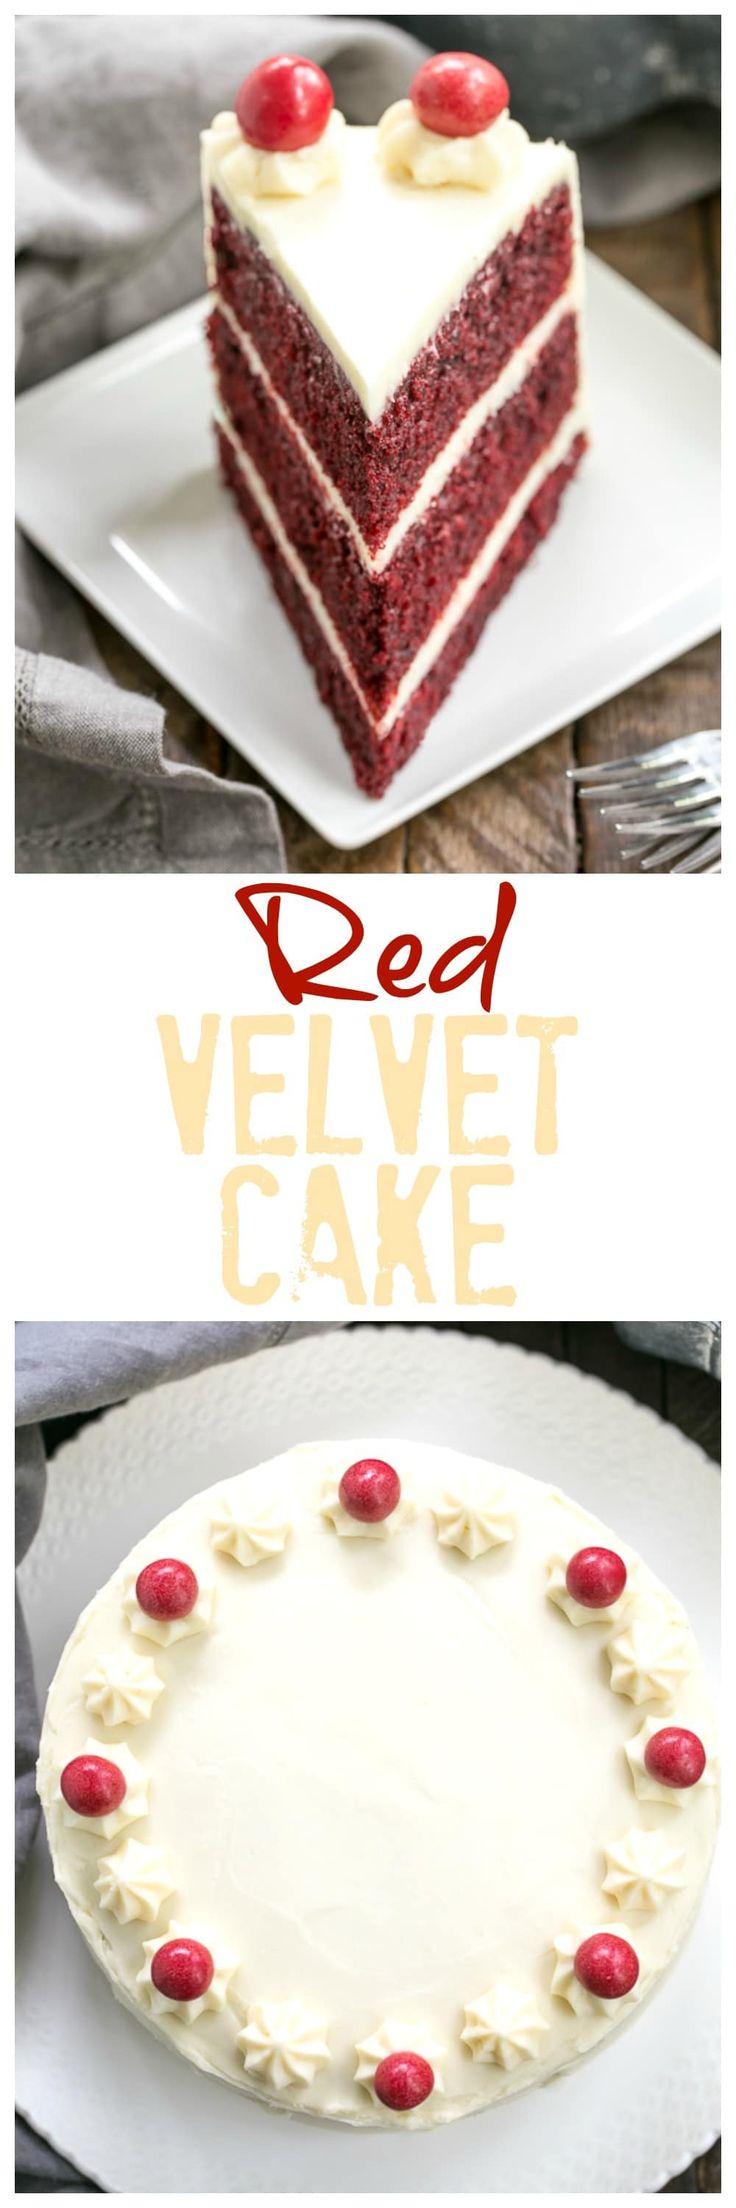 Red Velvet Cake with White Chocolate Cream Cheese Frosting | Triple layered decadence @lizzydo